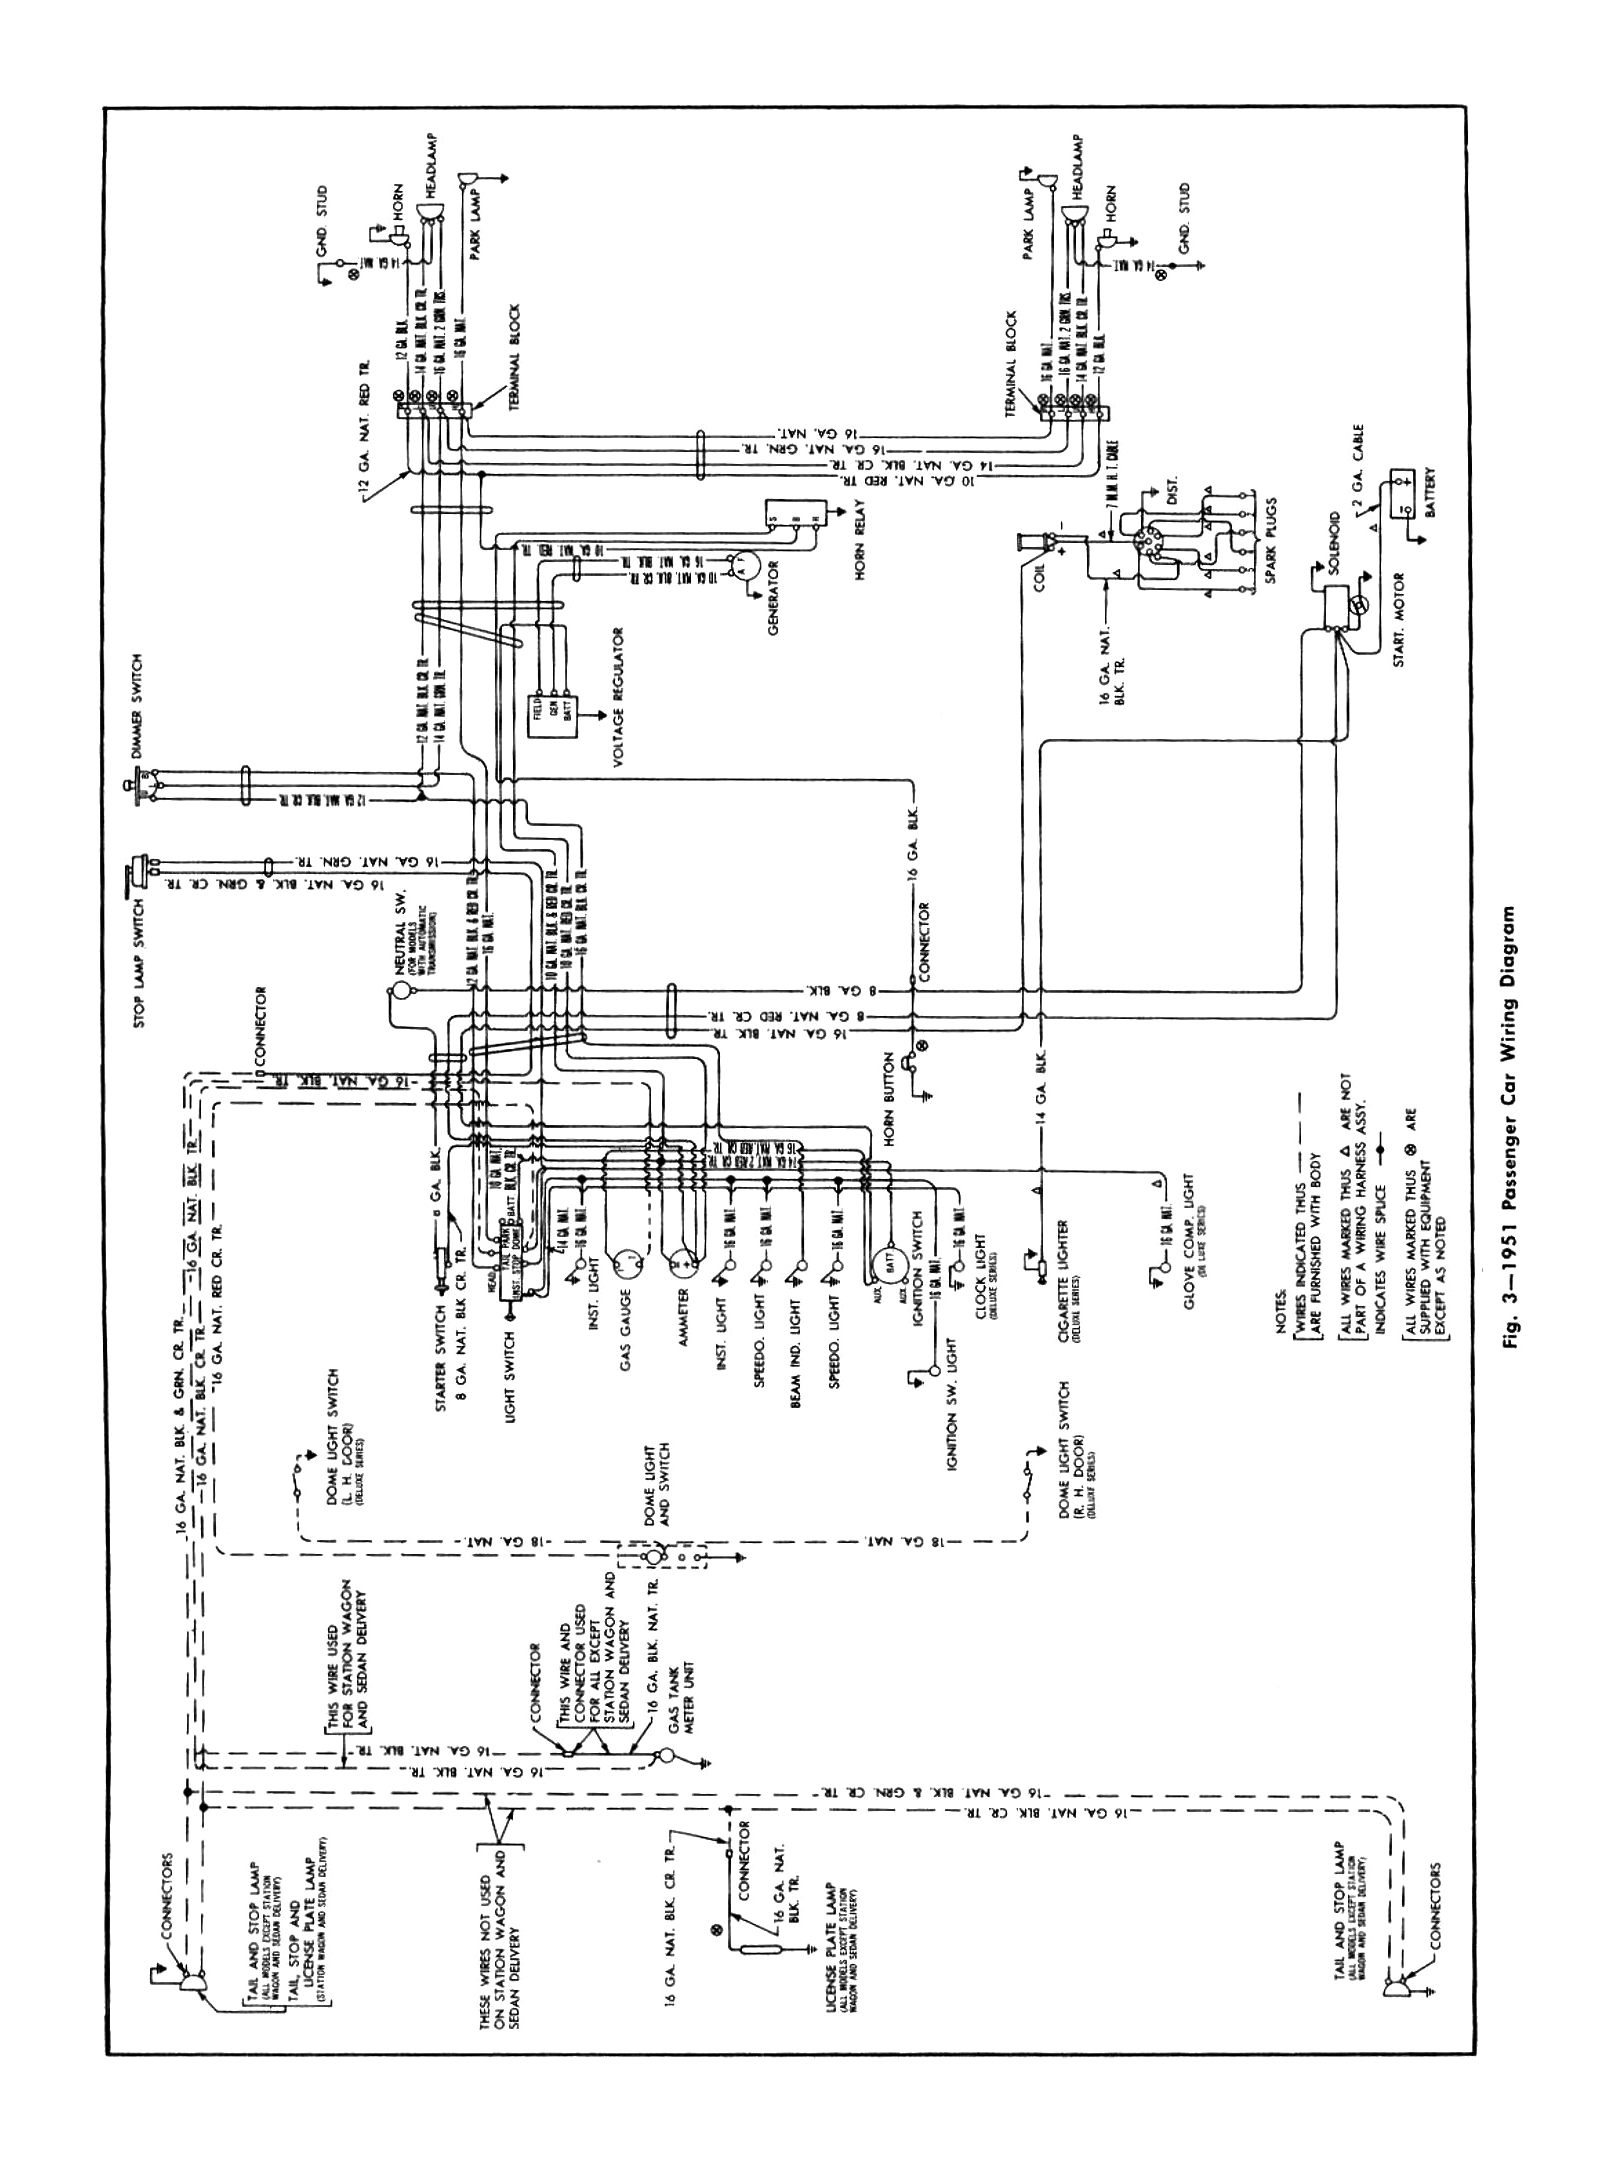 51car wiring loom diagram 1 2wire loom \u2022 wiring diagrams j squared co GM Factory Wiring Diagram at reclaimingppi.co